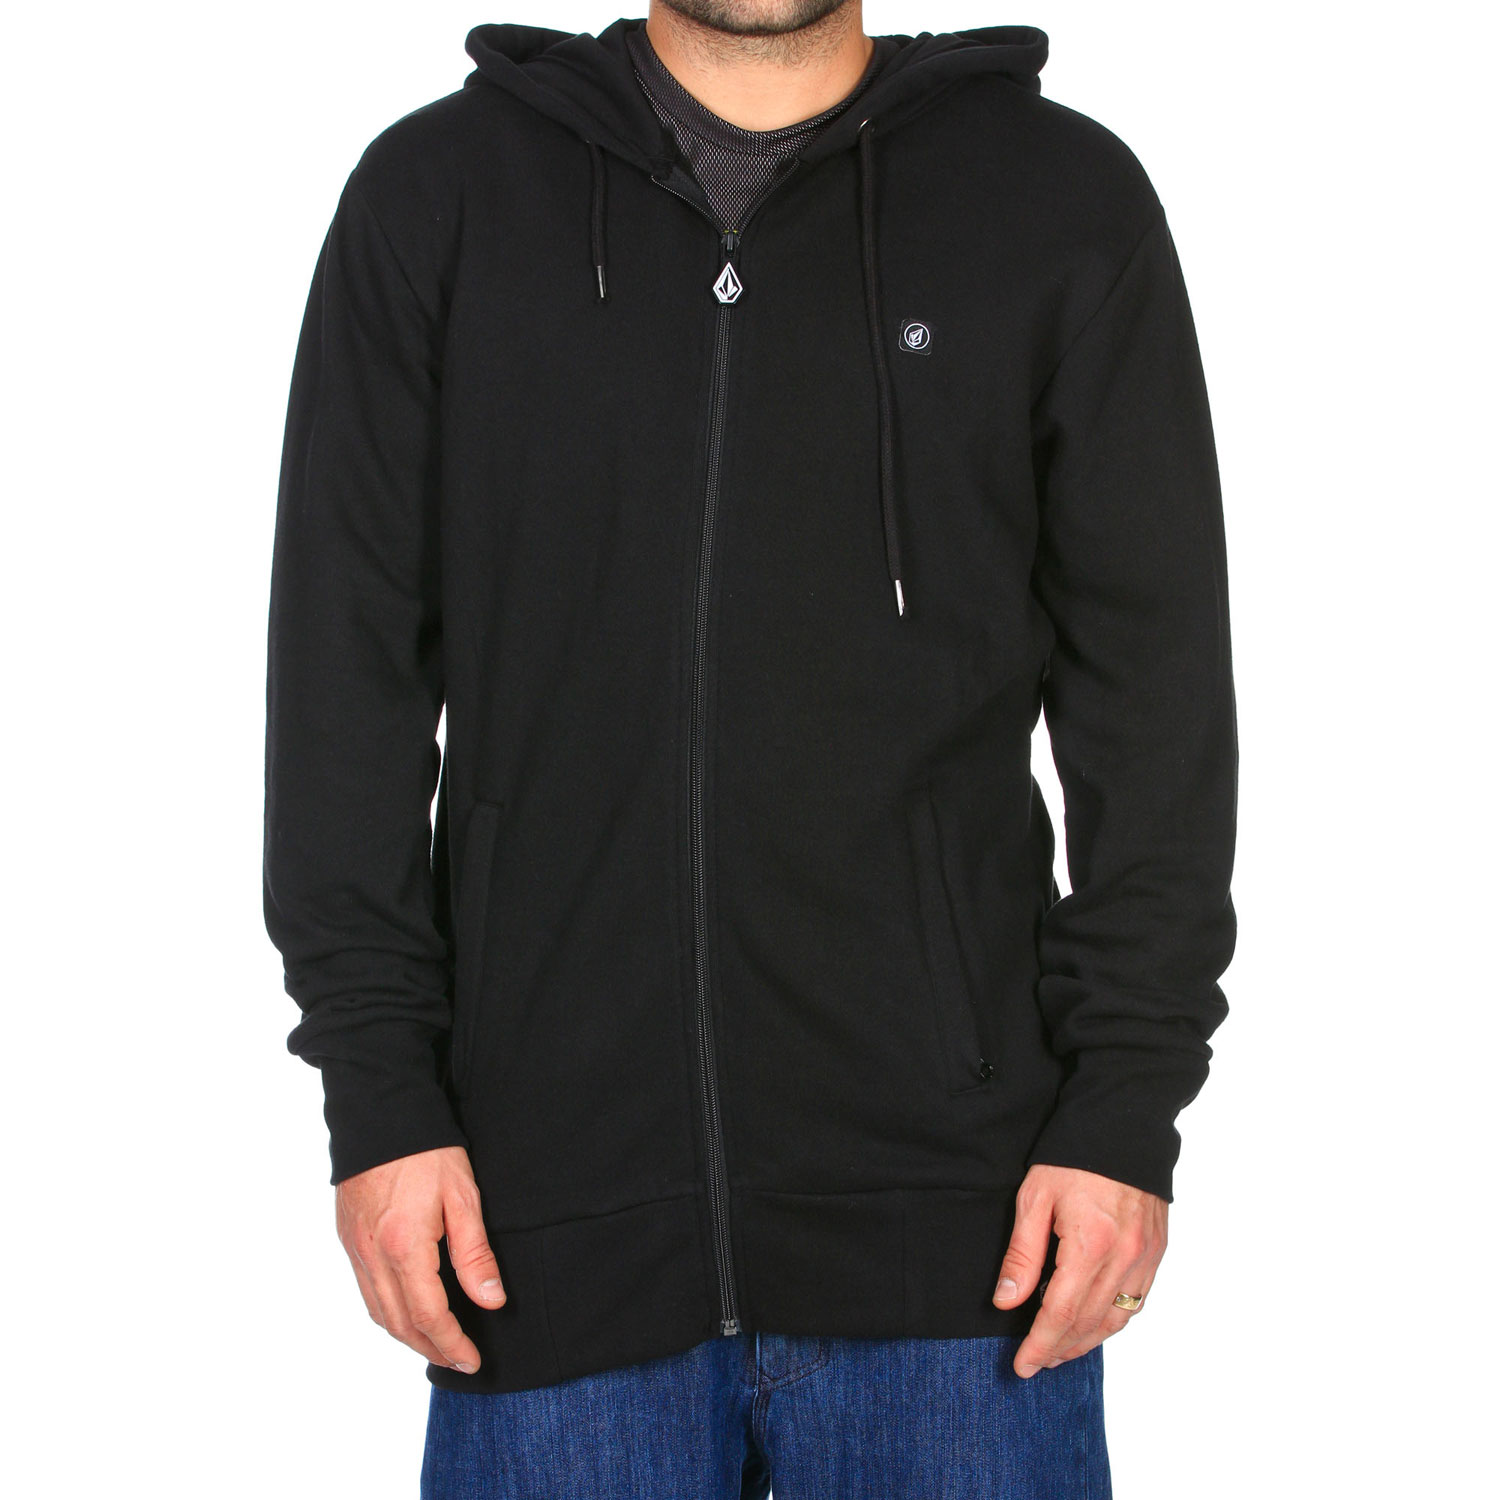 Surf Thew Volcom Sea Town Mod Hoodie is a stylish multi-season piece of casual or sportswear.  It can be used in cooler weather to keep warm but would be comfortable in temperatures into the 60's.  Its fleece material provides warmth where needed but it is light enough to be used as a jacket when a heavier-duty jacket is not required.  A unique aspect of the hoodie is that it's slim fit so it is snug and prevents cold air from getting in.  The Sea Town Hoodie is also aerodynamically efficient which makes it good for extreme activities such as snowboarding or skateboarding.Key Features of the Volcom Sea Town Mod Hoodie:  Cotton Poly Fleece  Cotton Jersey Lined Hood   Extra Wide Ribbed Cuff  Extra Wide Ribbed Hem  Zippered Hand Pockets   Drawcord Hood Cinch   Whistle Zipper Pull   Stone Patch   Long Modern Slim Fit - $45.95